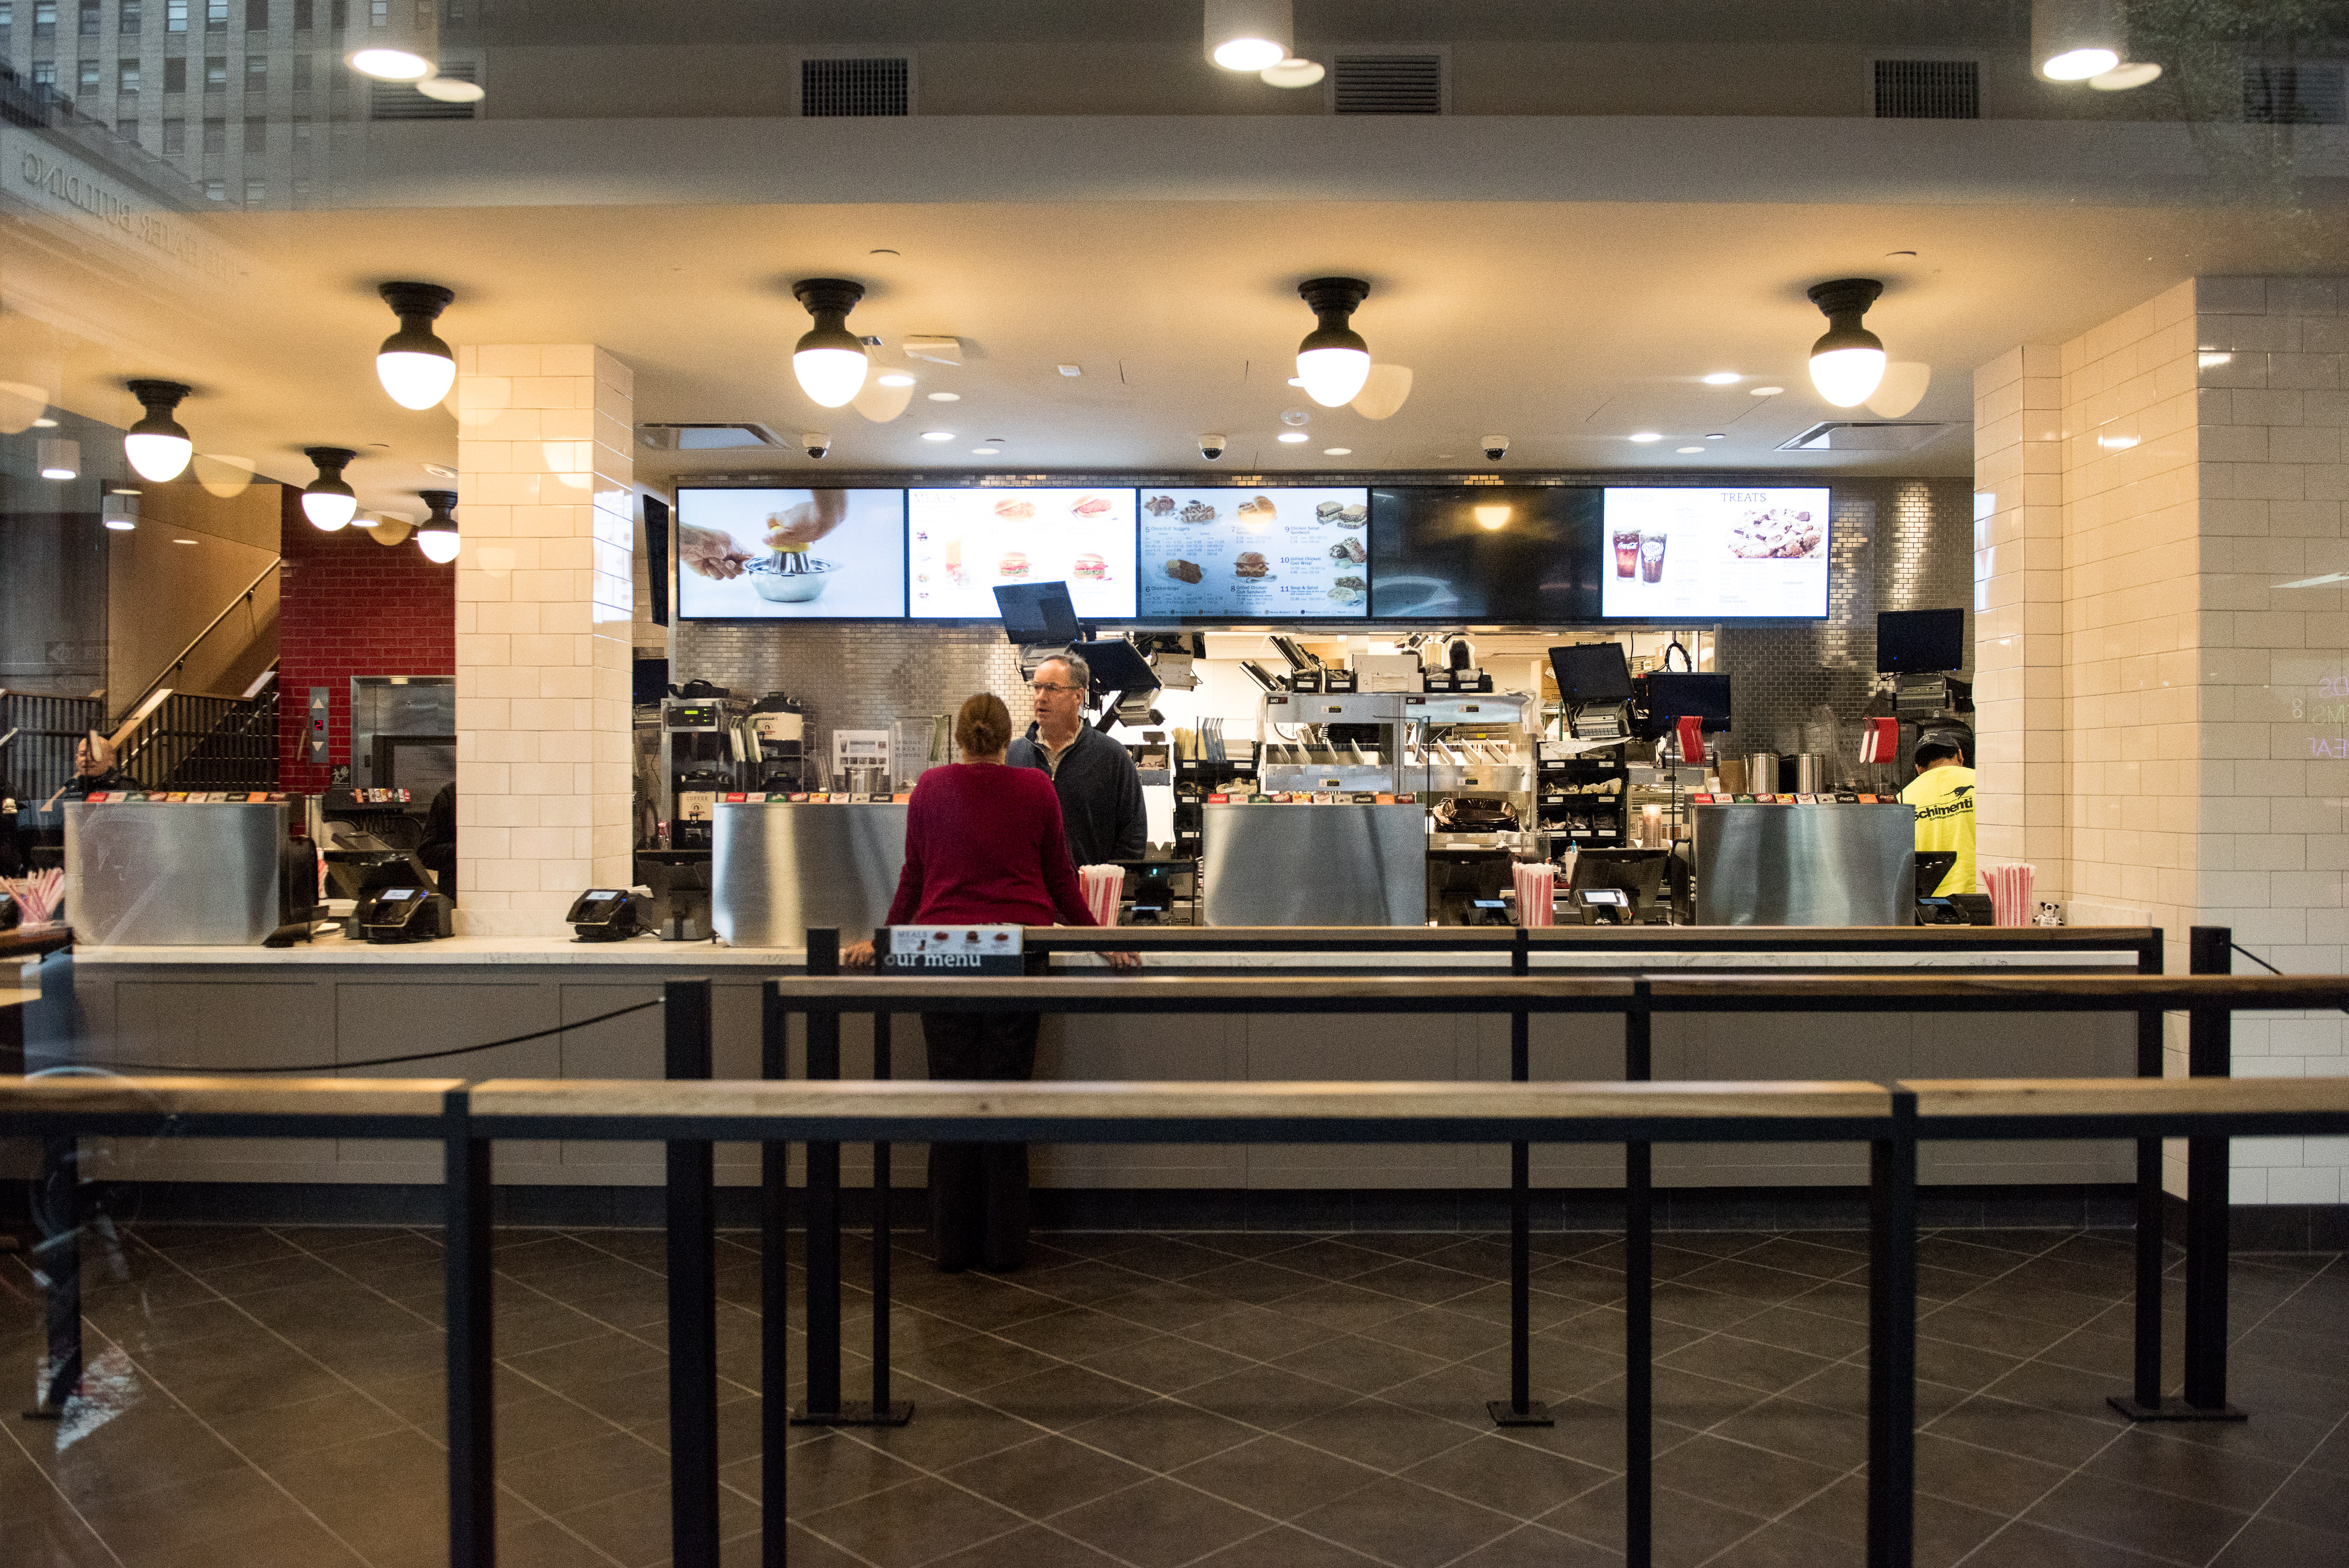 The interior of Chick-Fil-A, a day before its opening, on 37th Street and 6th Avenue (Andrew Renneisen/Getty Images)